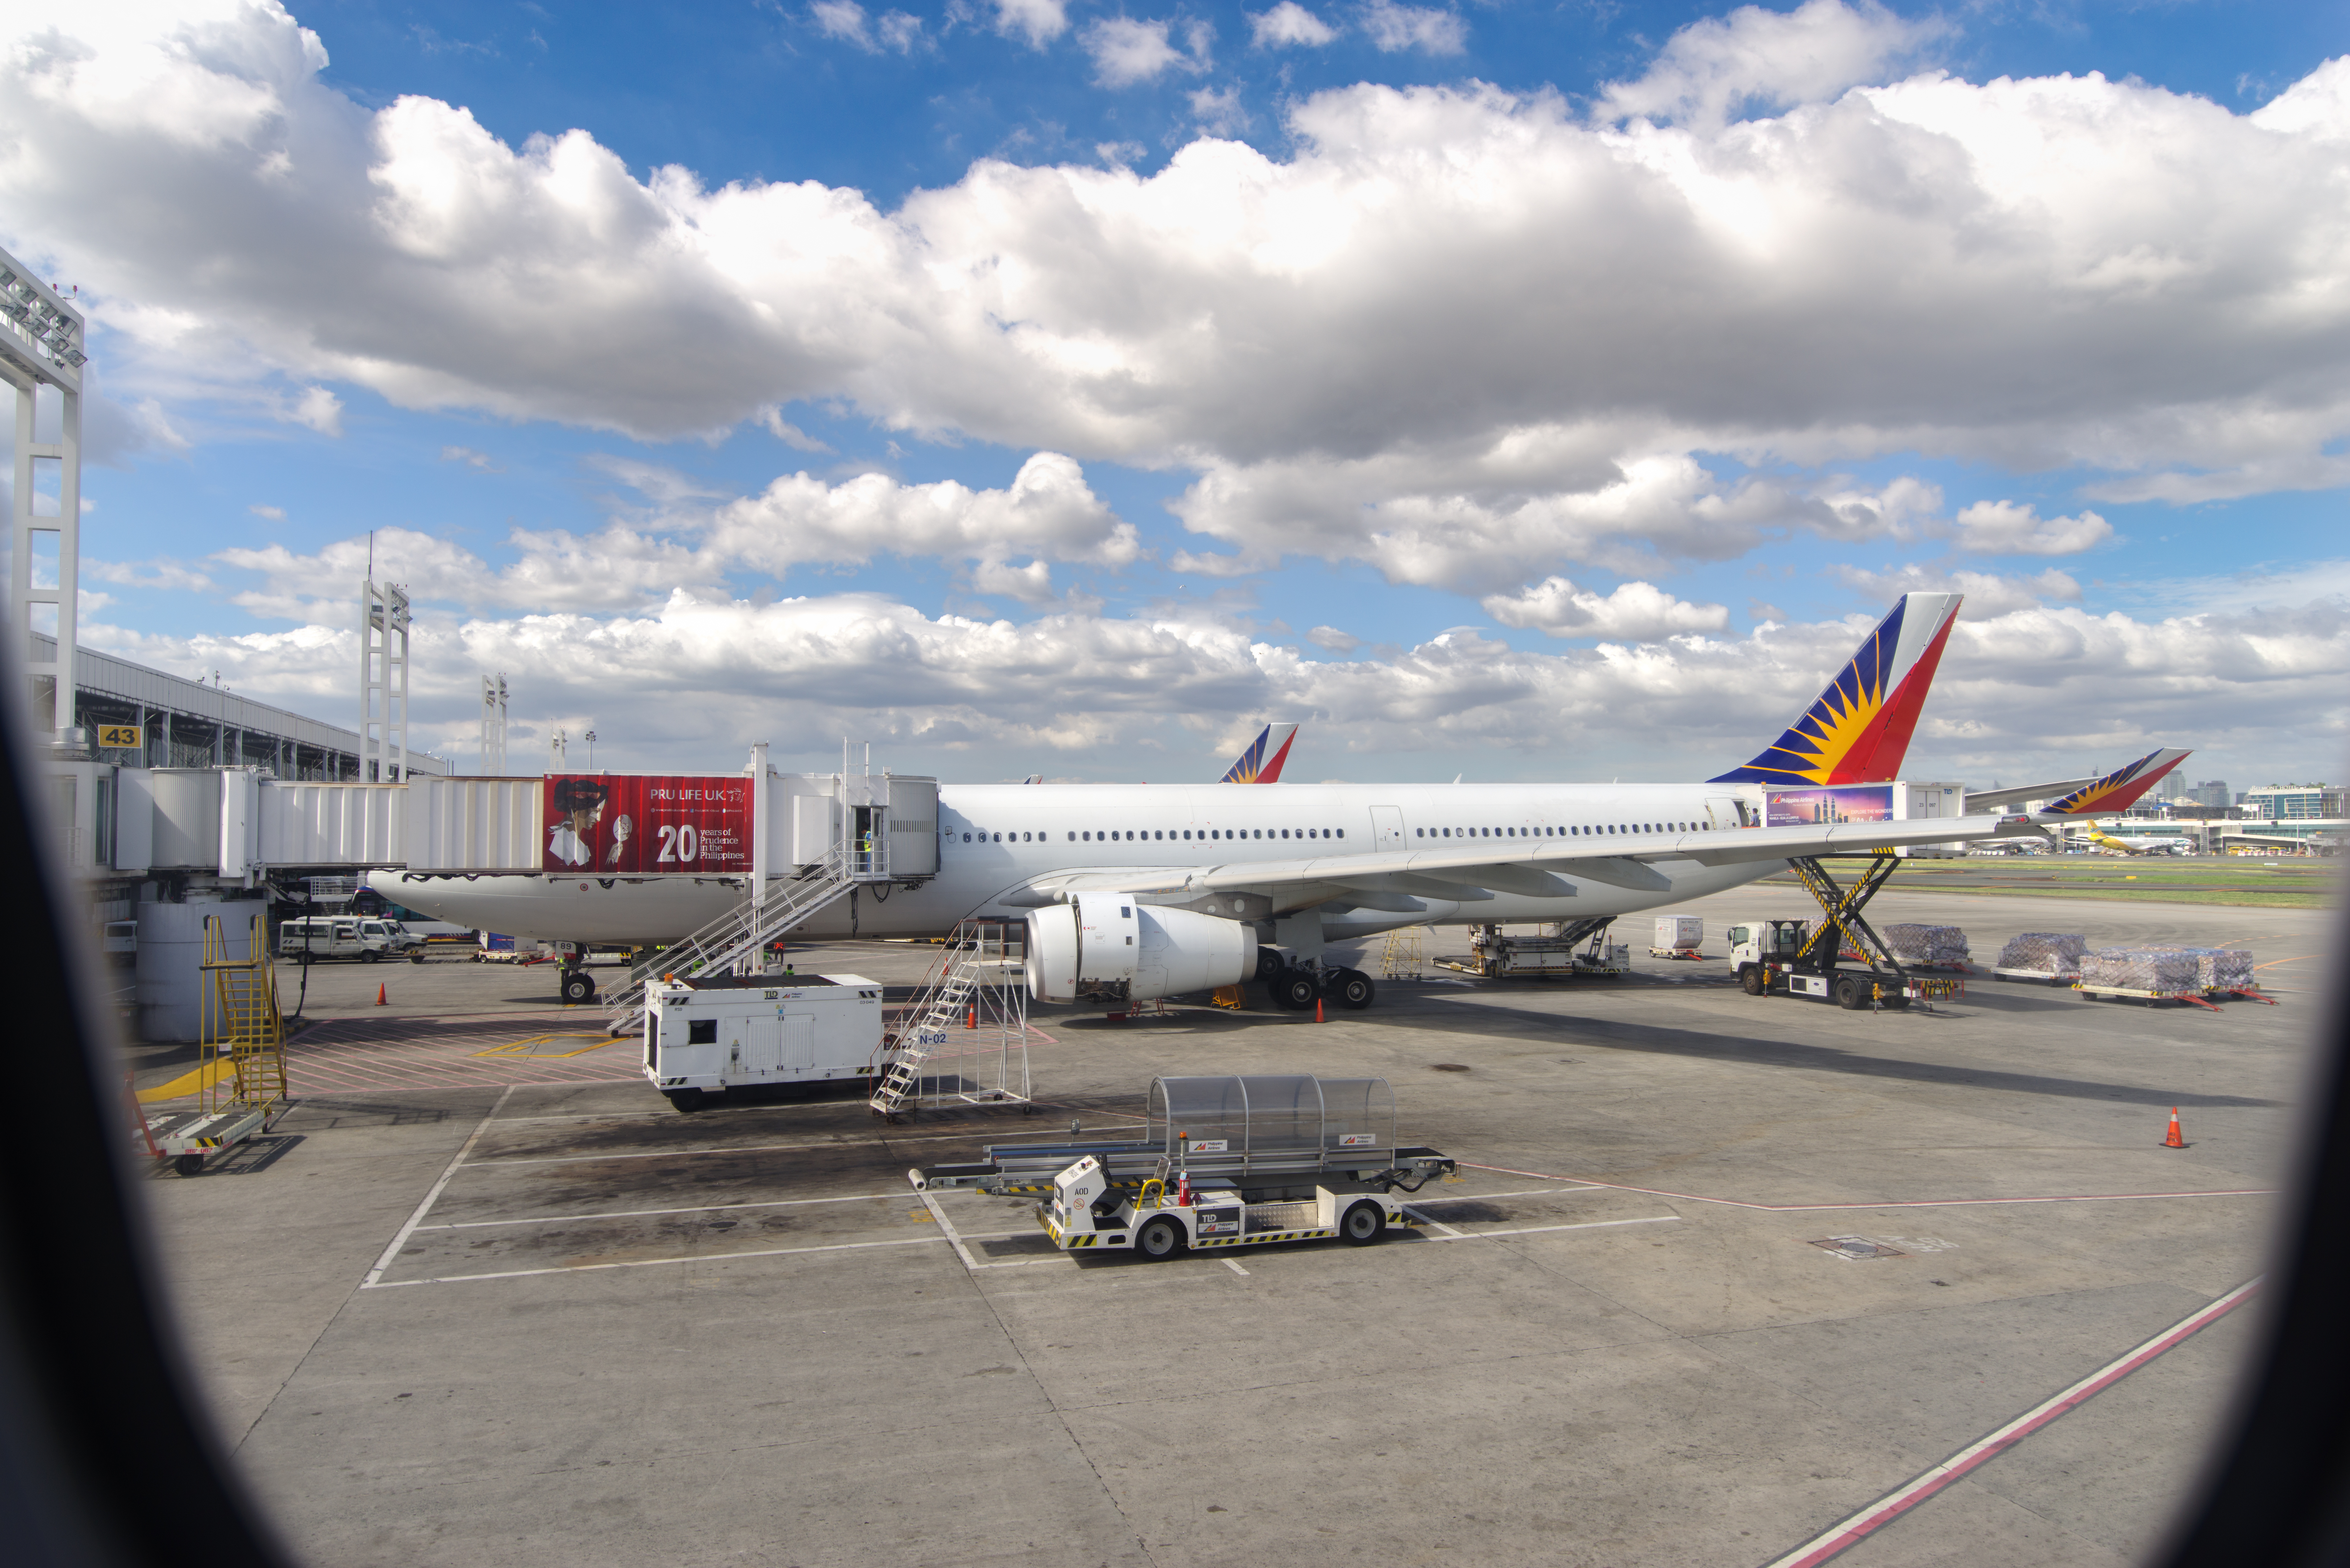 Manila's airport is about to get an exciting, much needed upgrade